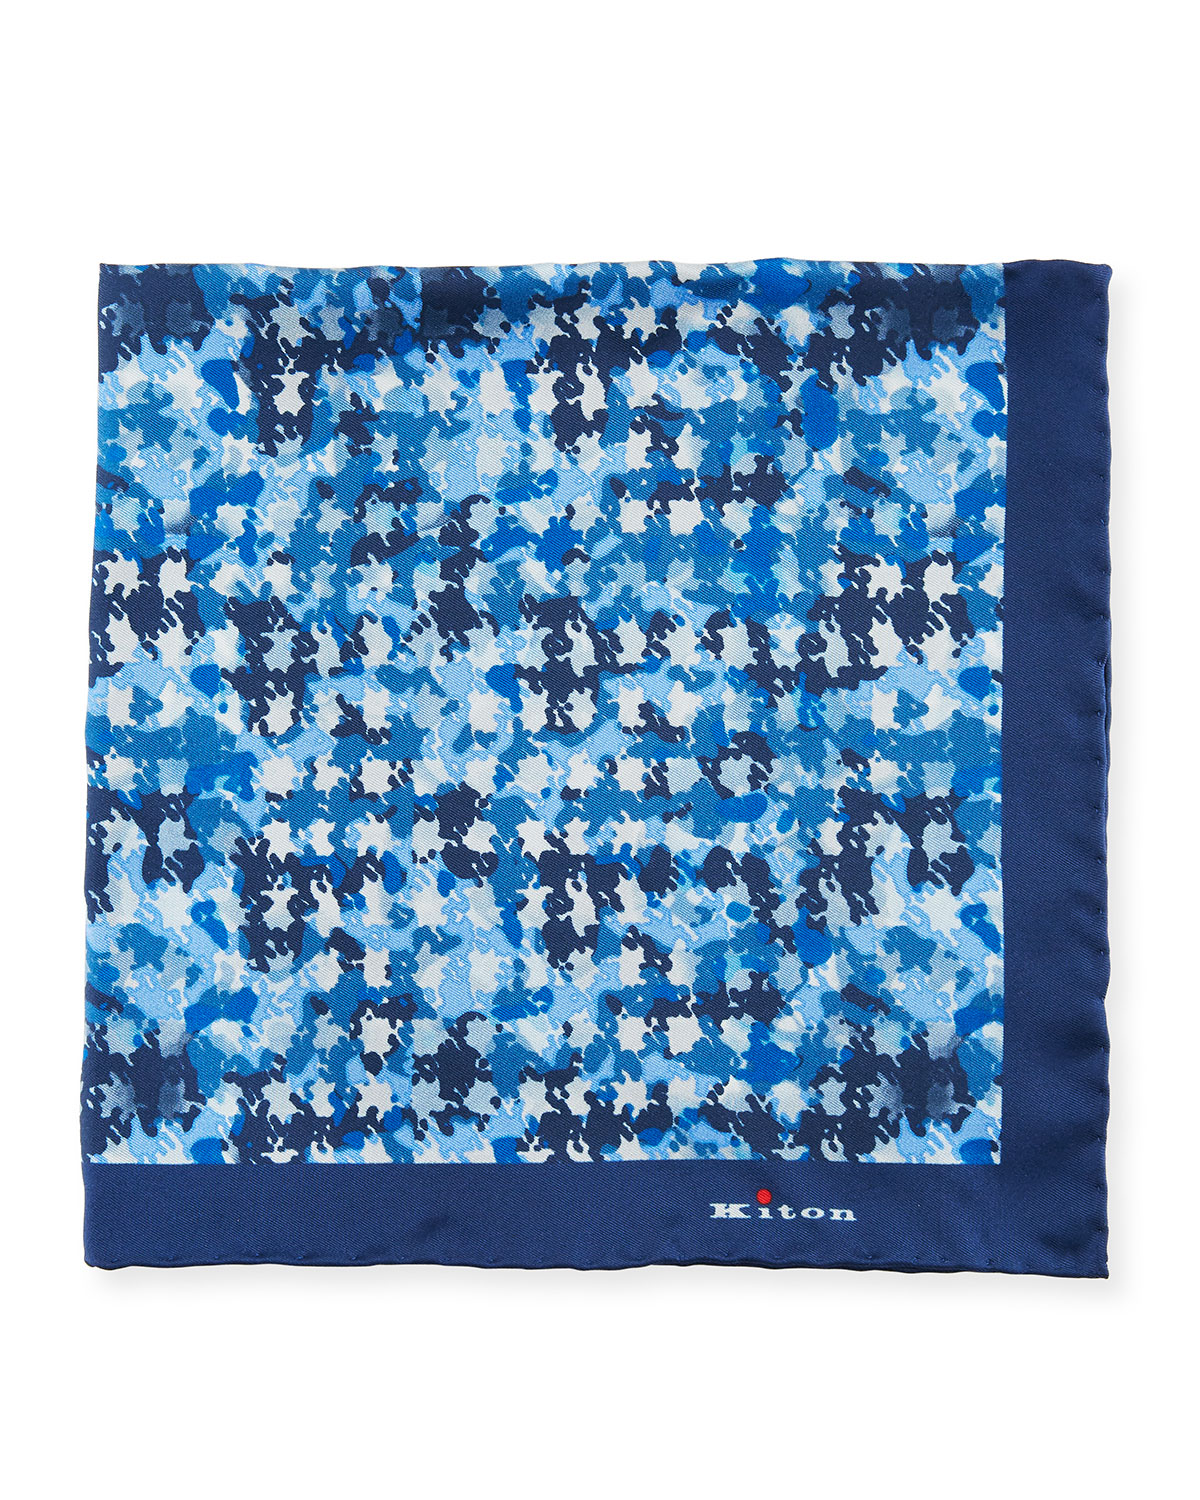 Irregular Spots Silk Pocket Square